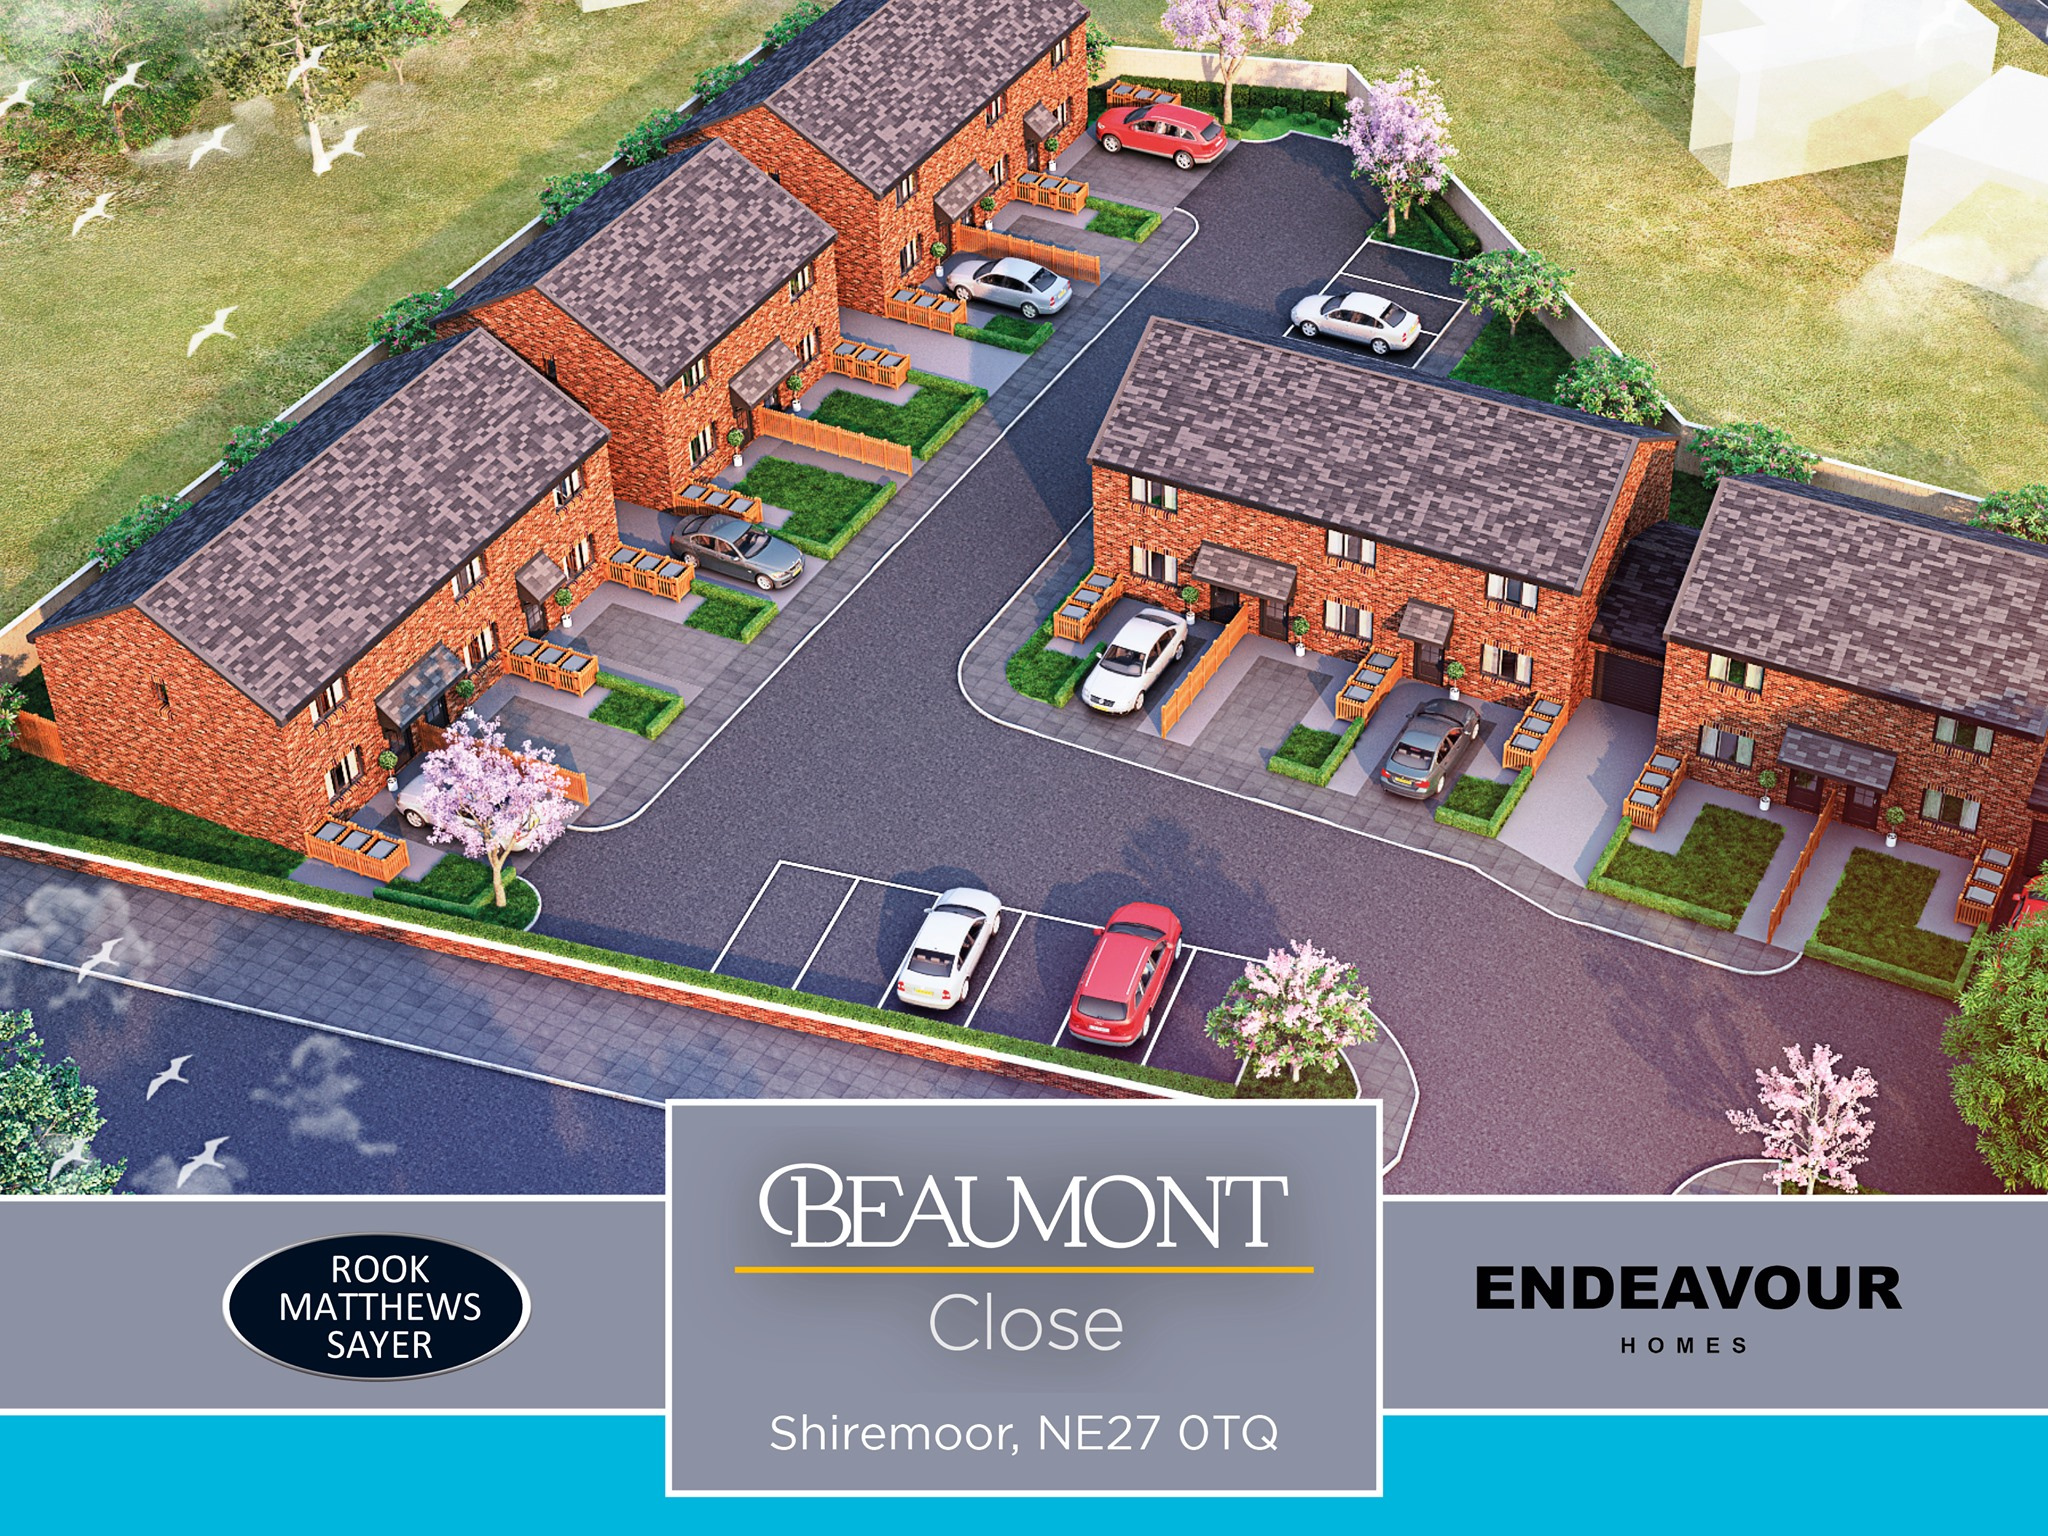 Reserve your Beaumont Close home now!